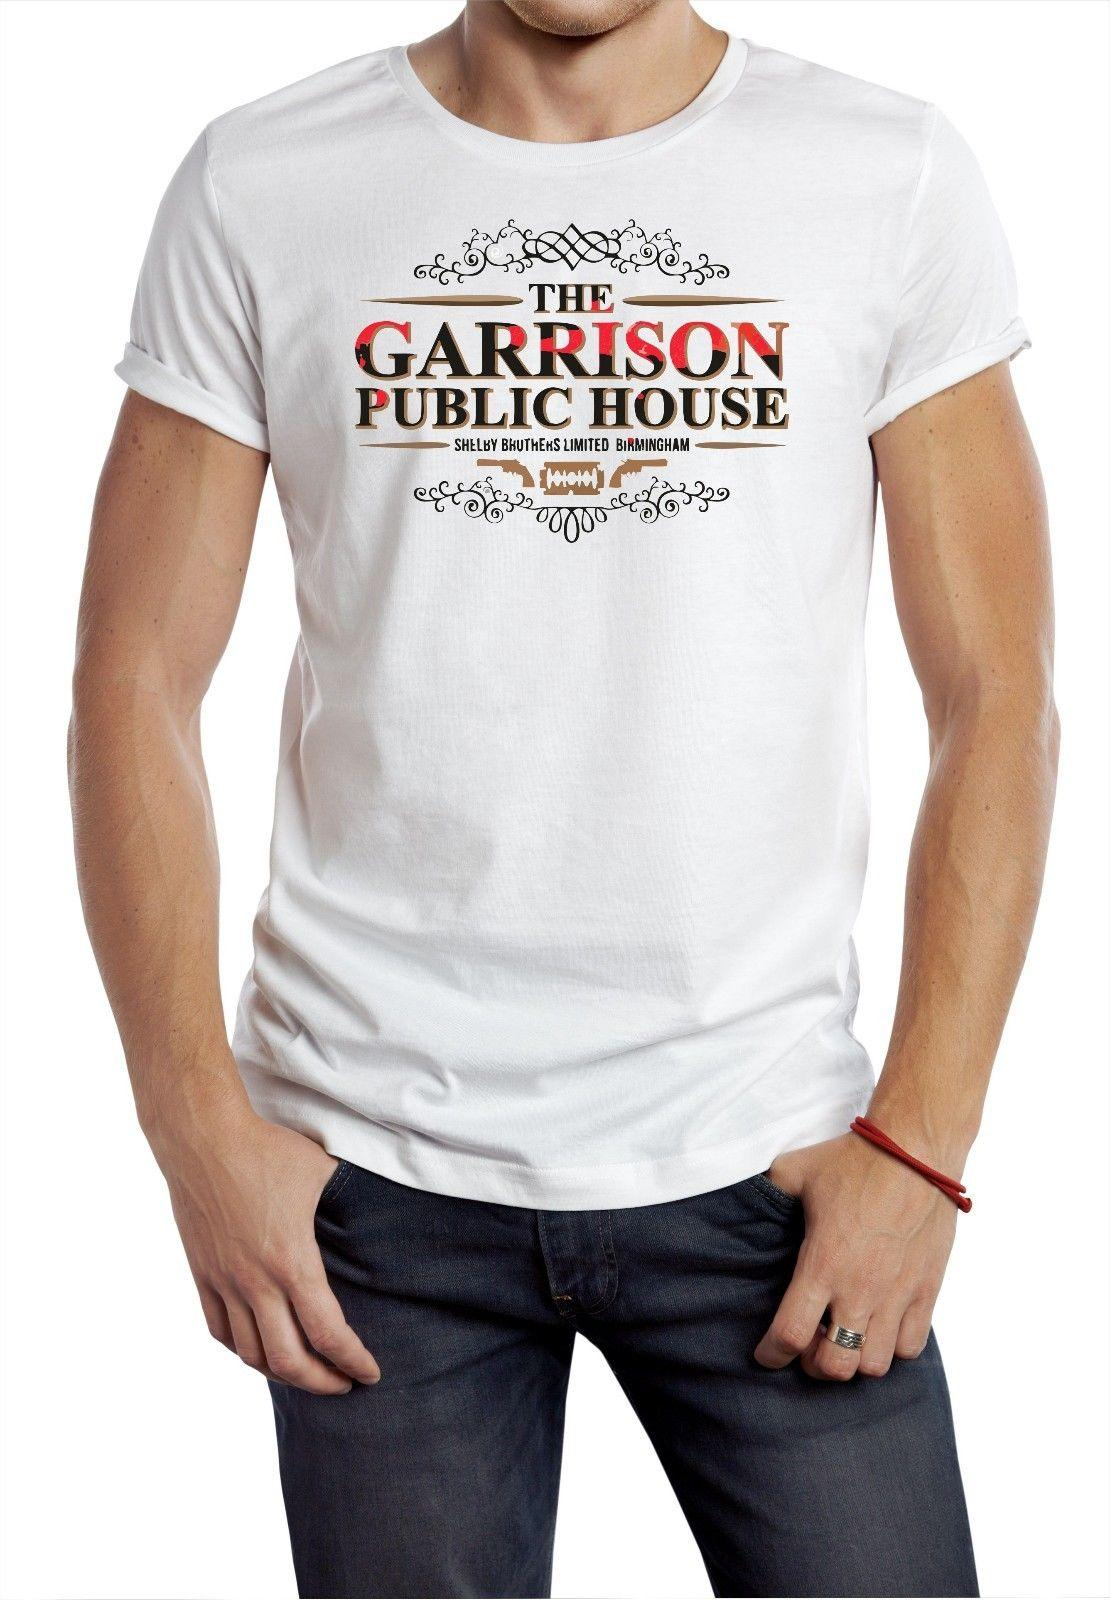 fd2c61aa THE GARRISON T SHIRT PUBLIC HOUSE PEAKY BLINDERS TV TEE GANGSTER BIRMINGHAM  W T Shirt Shirt Designs T Shirt Shop Design From Allthingsgood, $11.01|  DHgate.